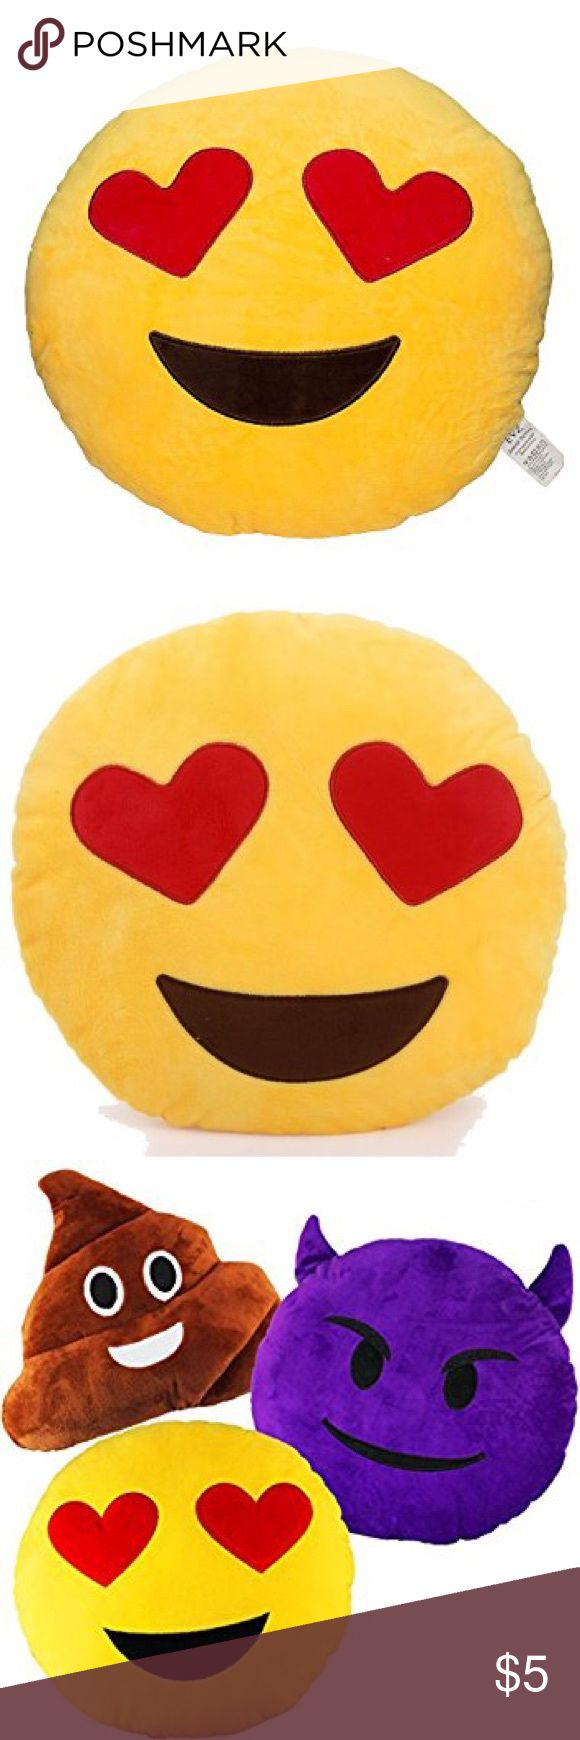 Heart Eyes Emoji Pillow 😍😍 BRAND NEW Heart Eyes Emoji Pillow 😍 never been opened or used 😍 soft, fluffy Heart Eyes Emoji Pillow 😍 Other